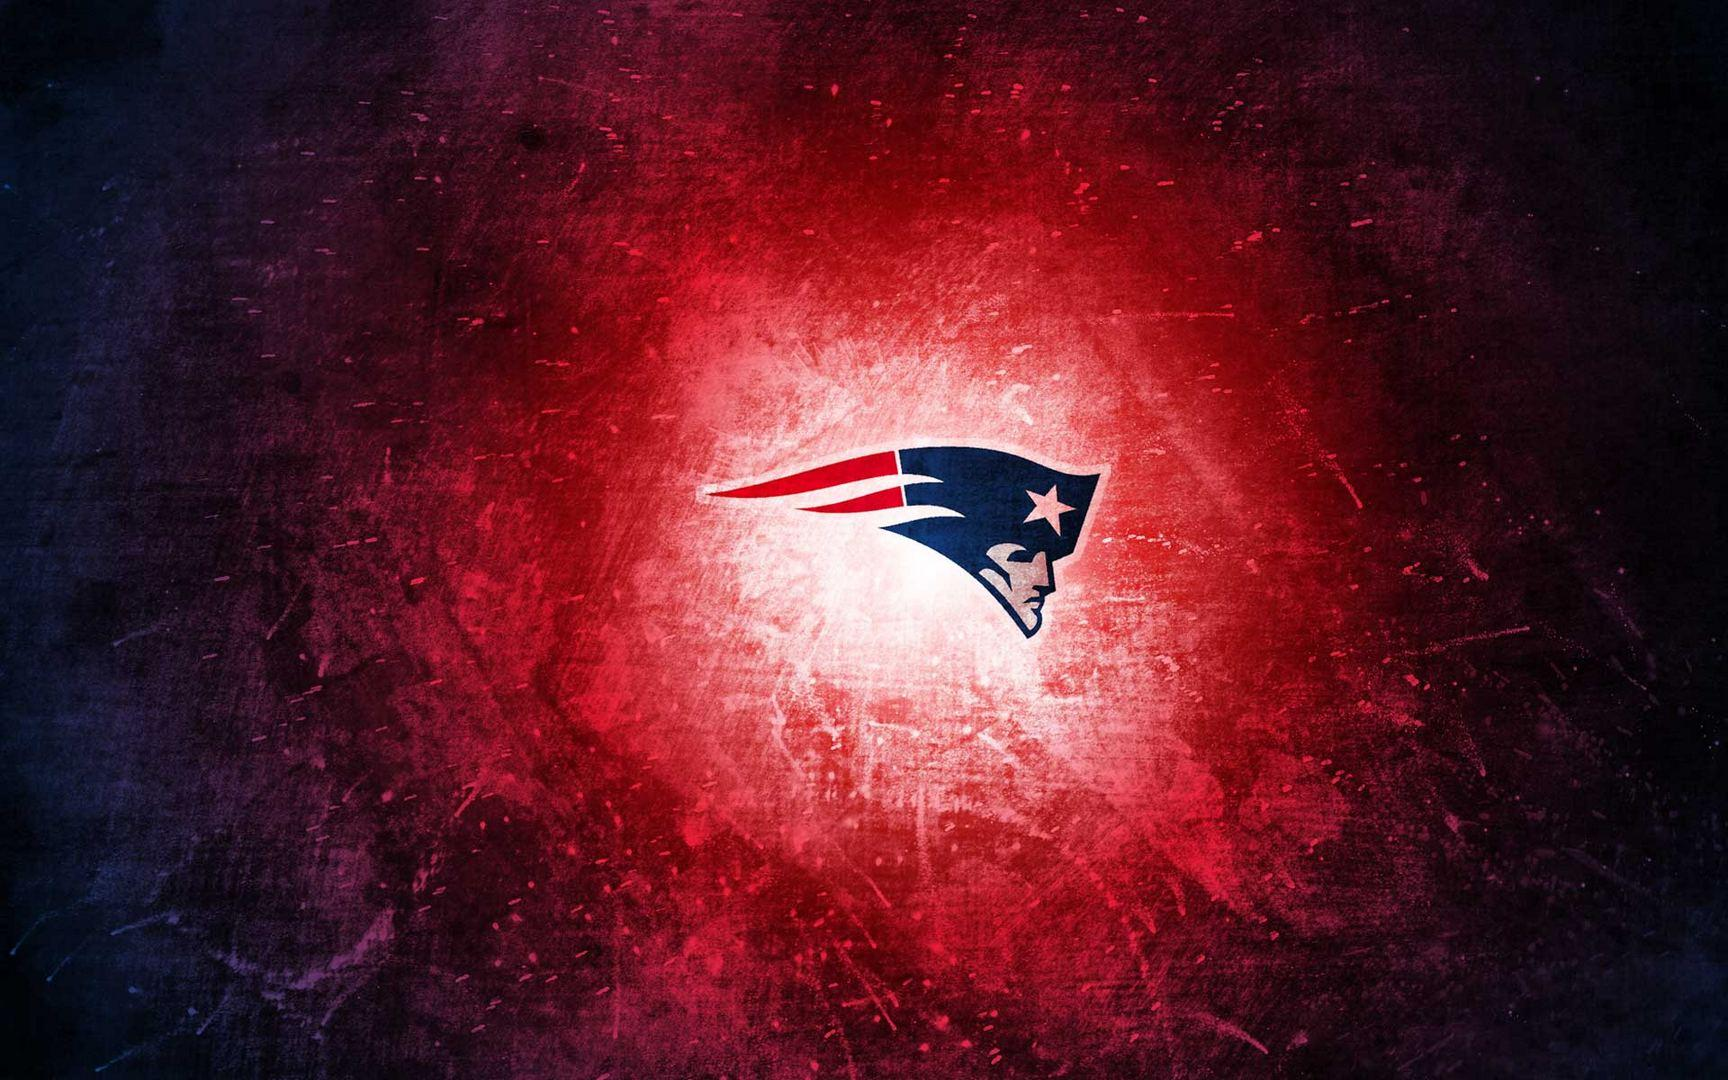 New England Patriots wallpaper hd free download